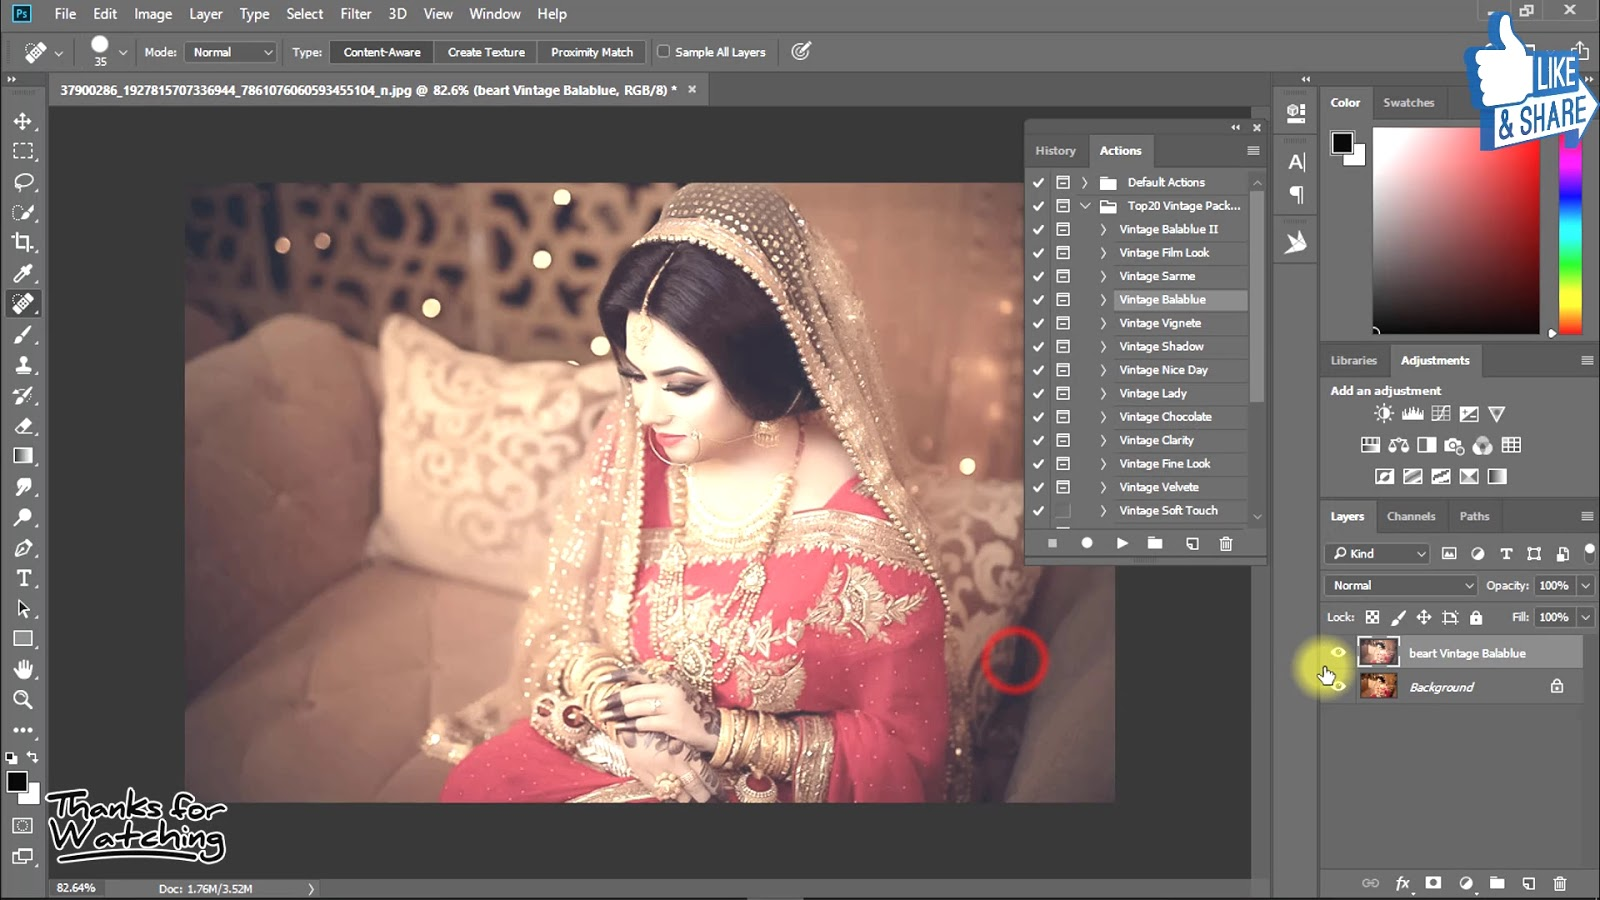 1-Click Automatic Vintage Wedding Effects Photoshop Actions Download 4